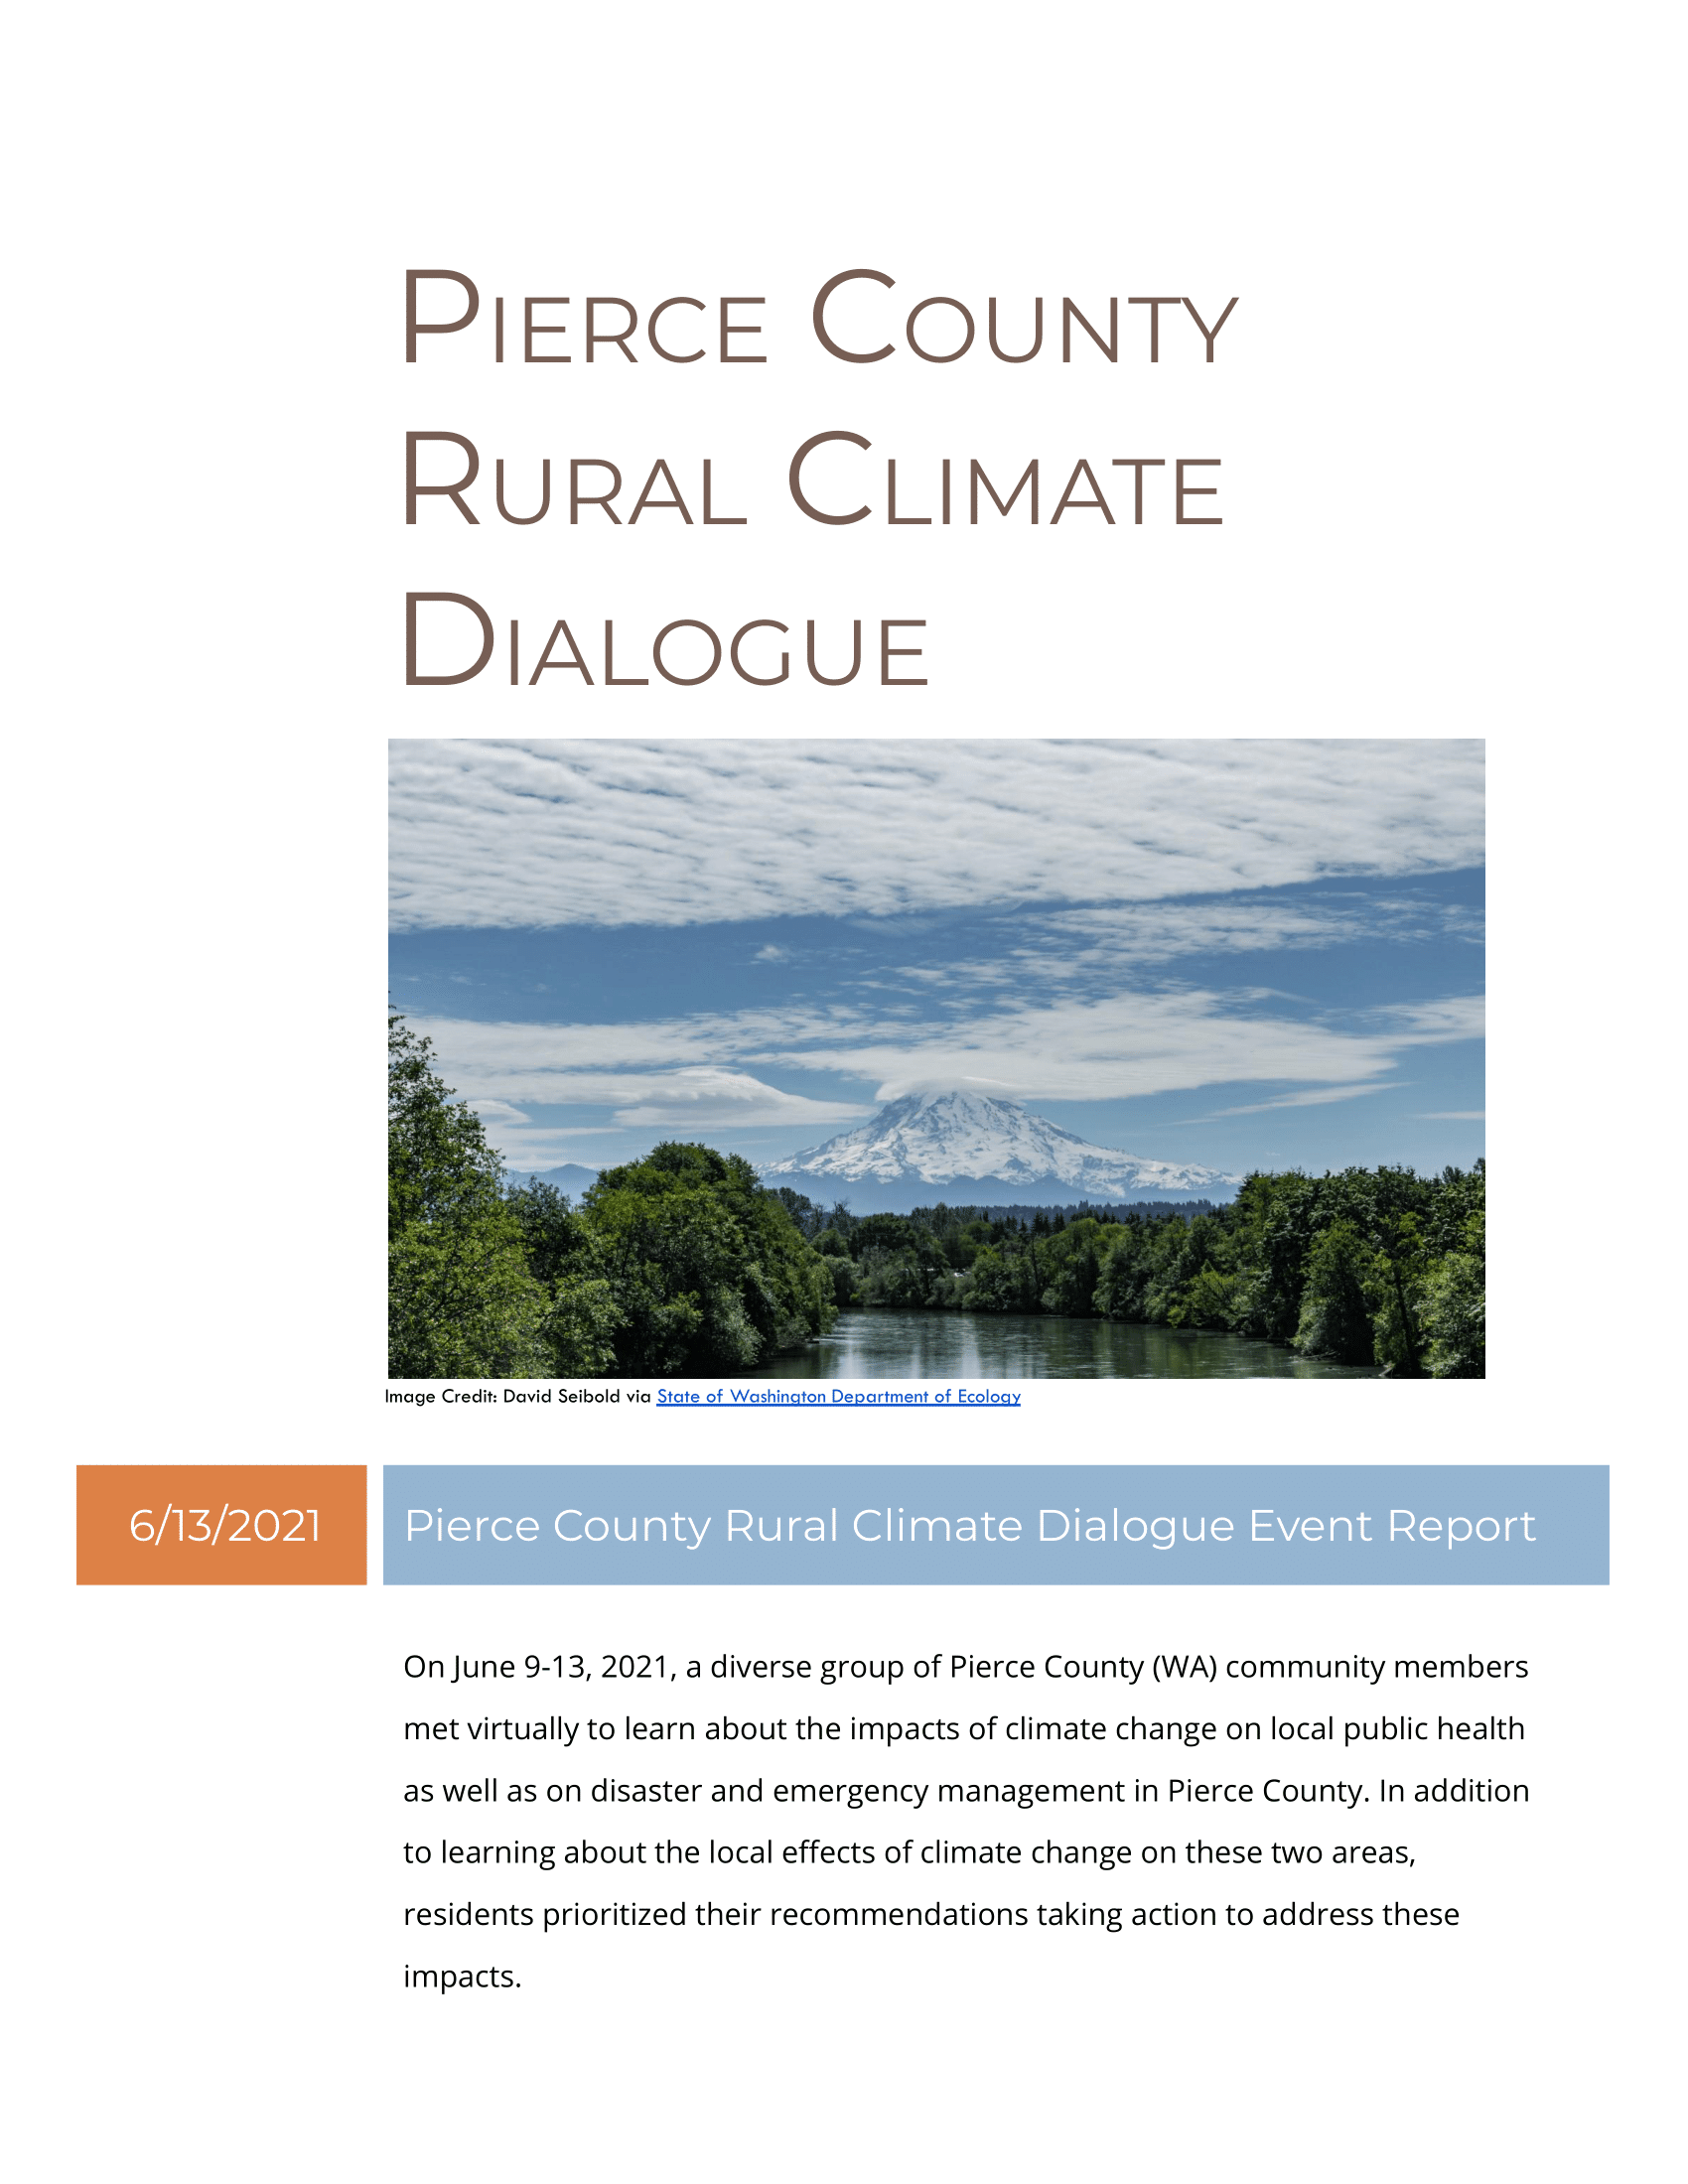 Pierce County Rural Climate Dialogue Event Report (Final)-01 Opens in new window